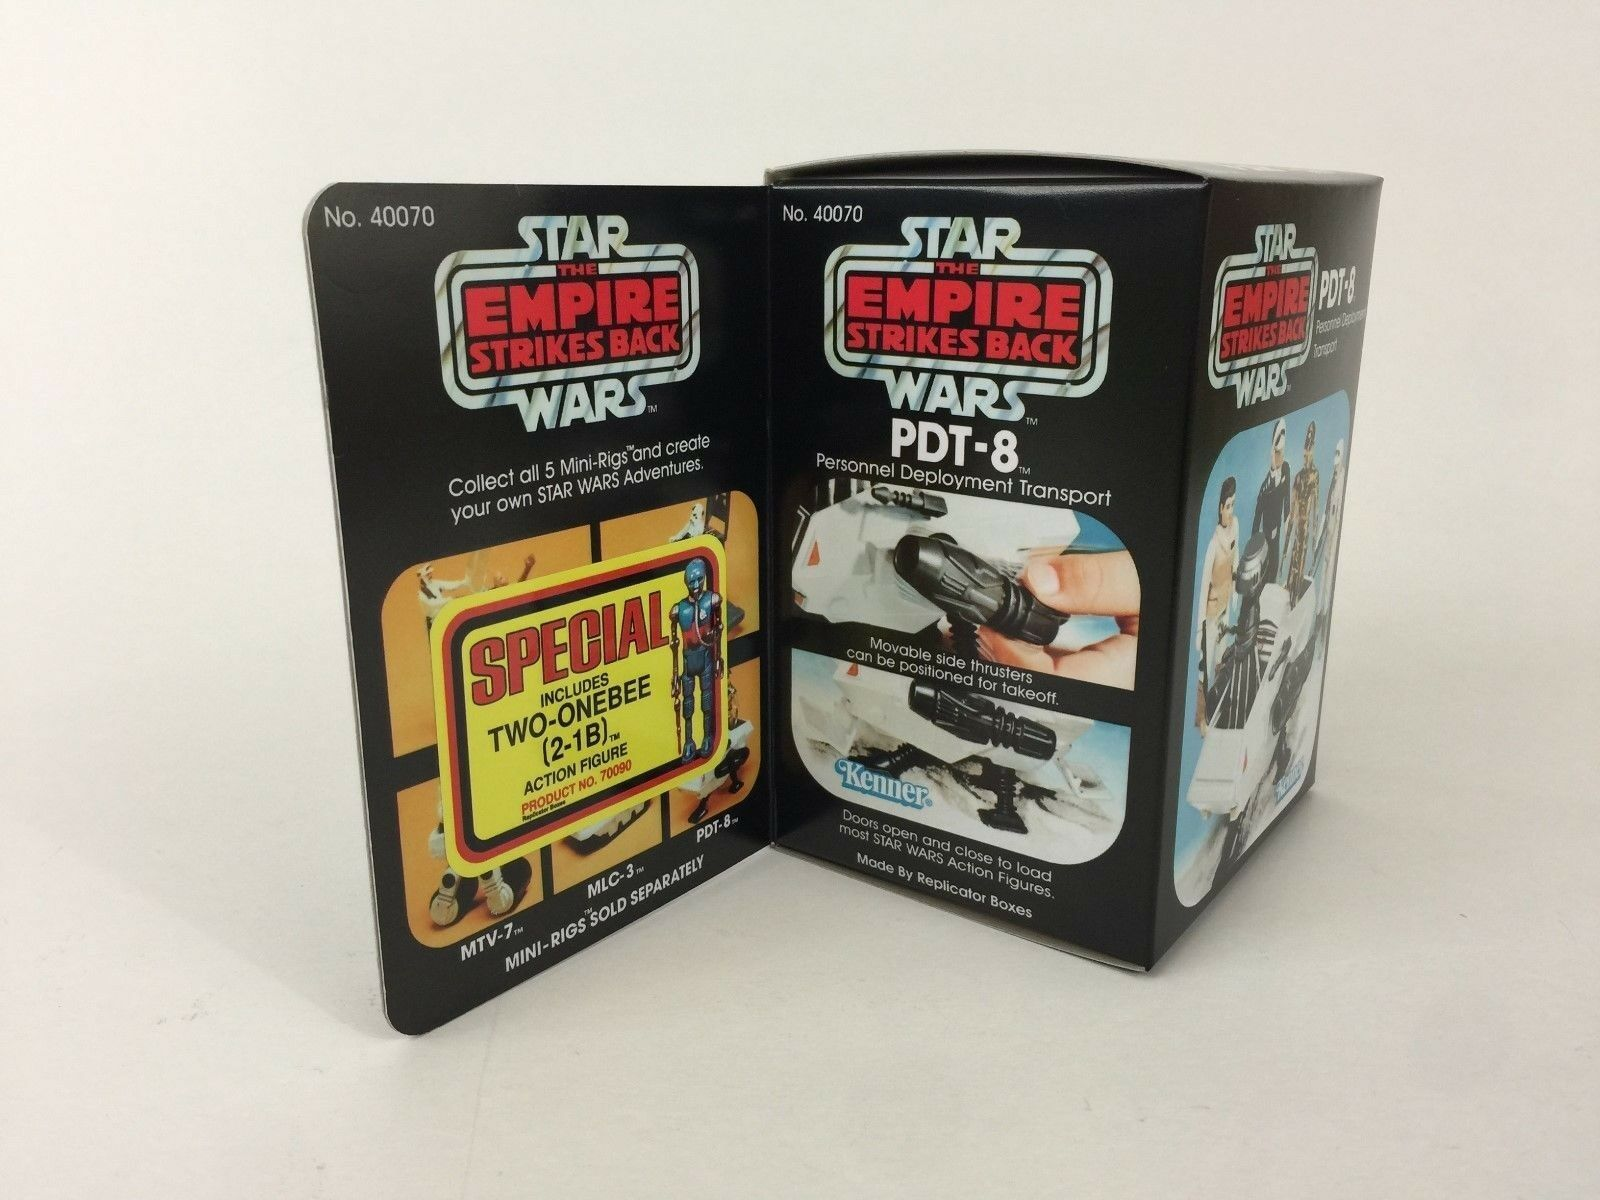 Reproduction vintage star wars esb special mini rig pdt-8 special esb offer 2 box + inserts f0dfbb